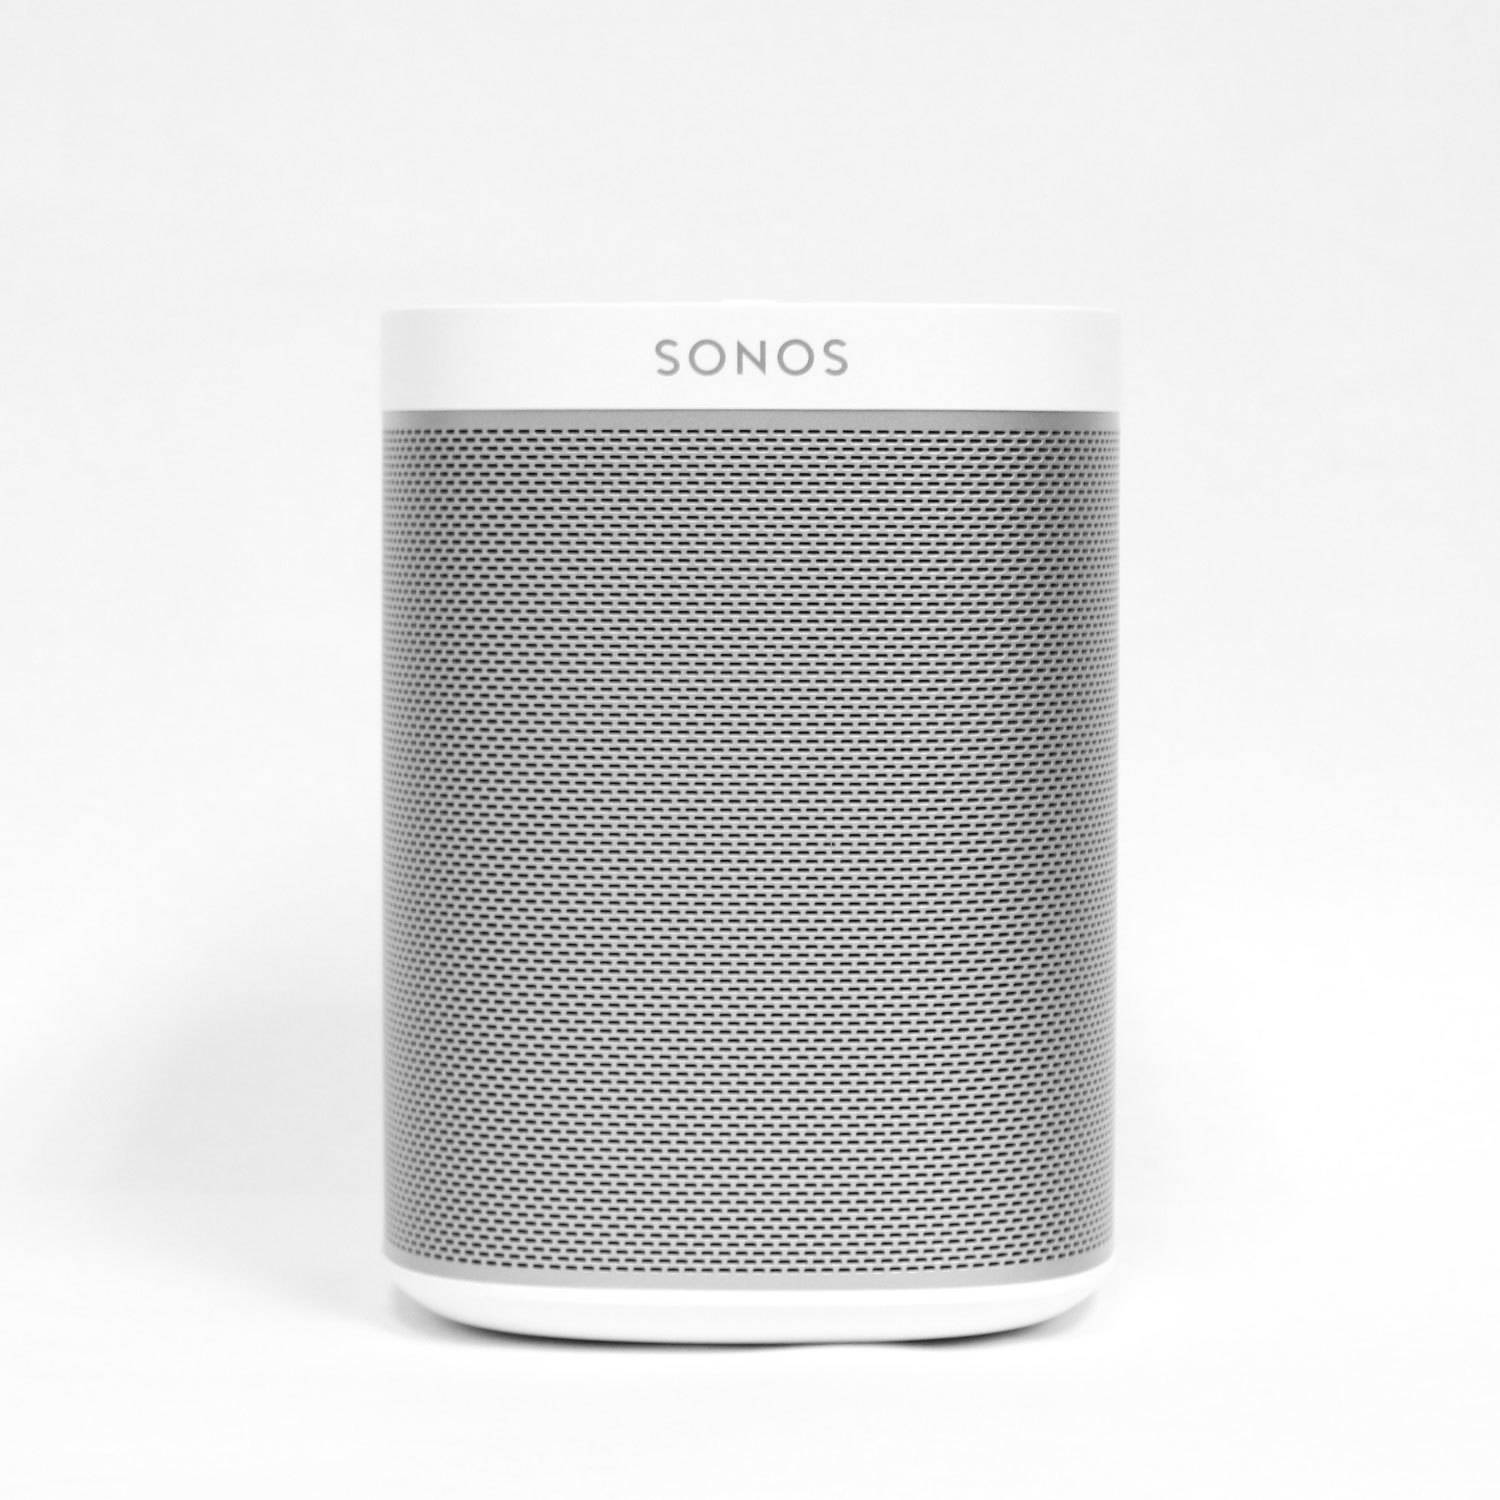 Sonos PLAY:1 Compact Smart Speaker for Streaming Music, White by Sonos